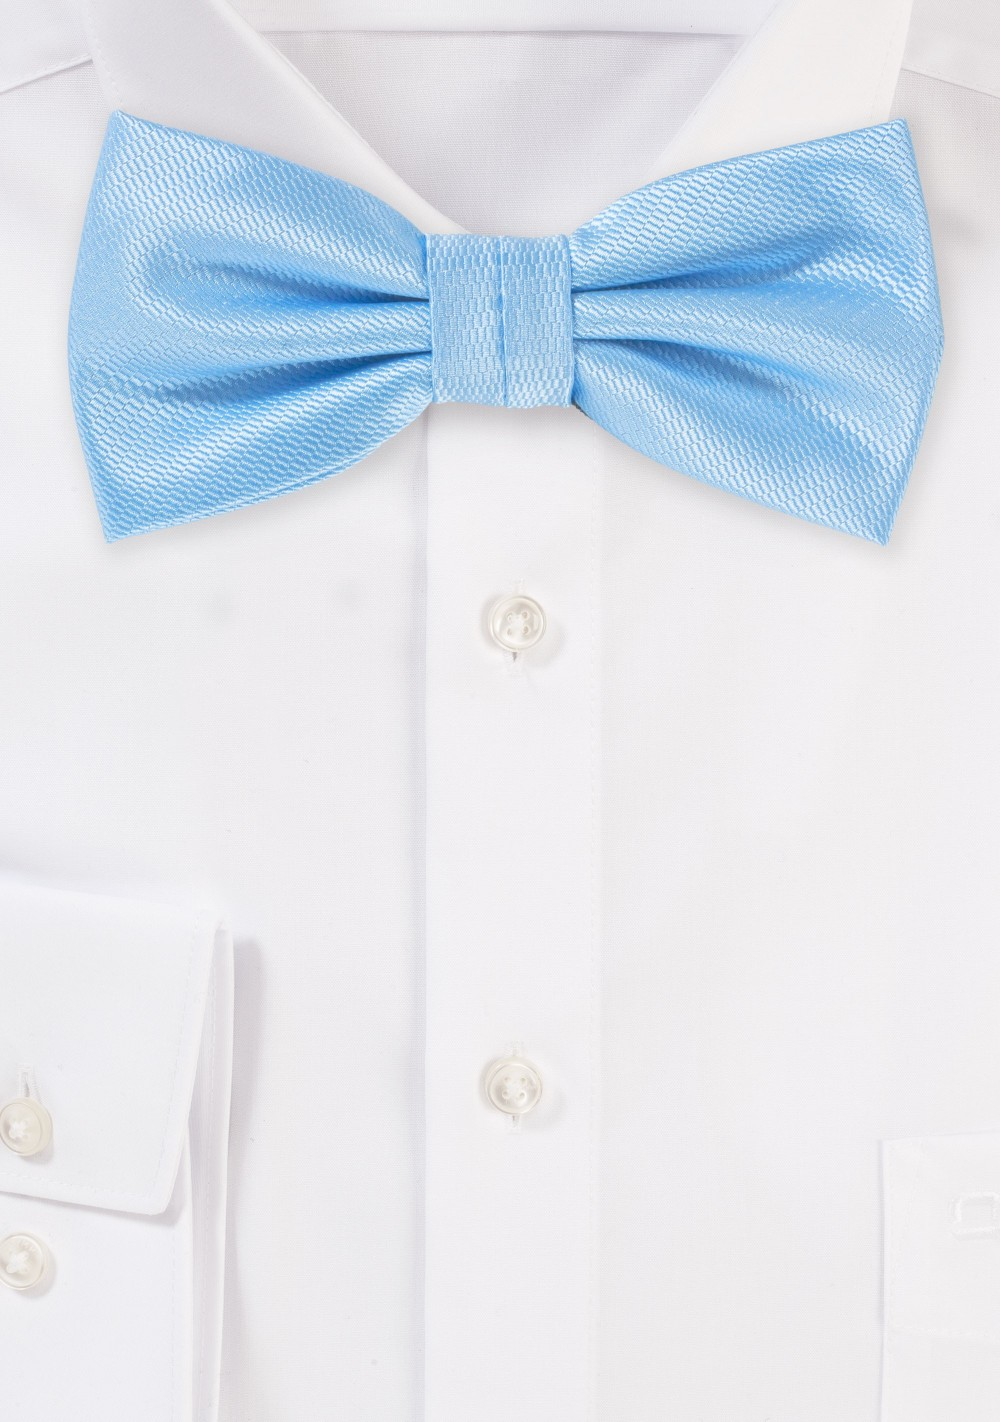 Elegant Summer Bow Tie in Capri Blue